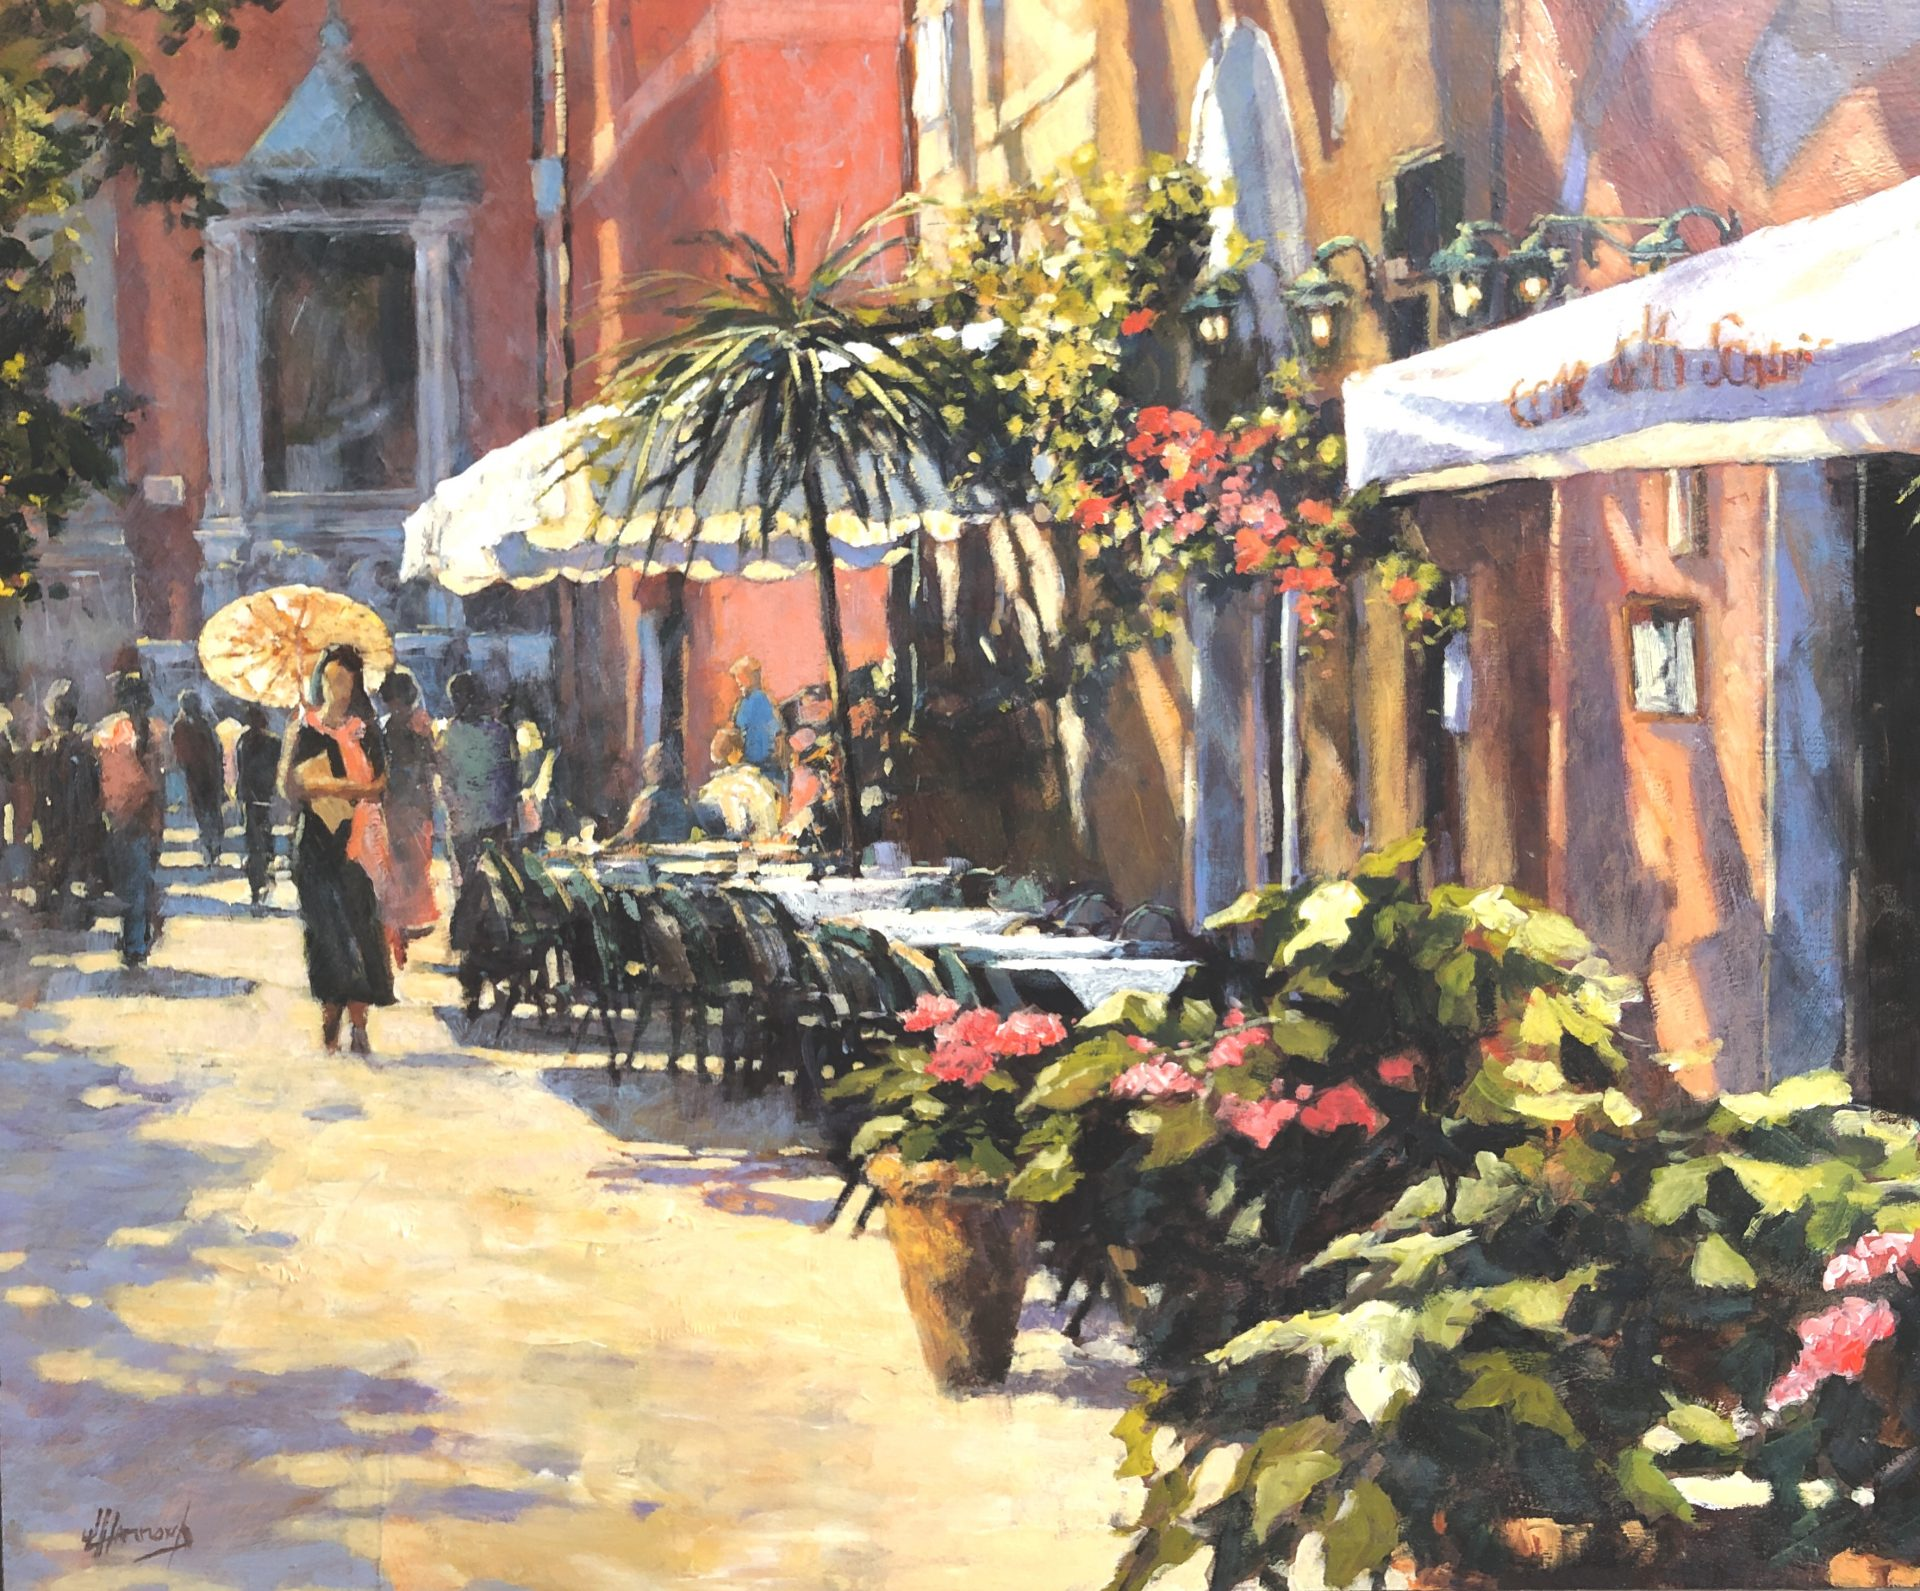 John Hammond The Parasol Rome italy painting for sale